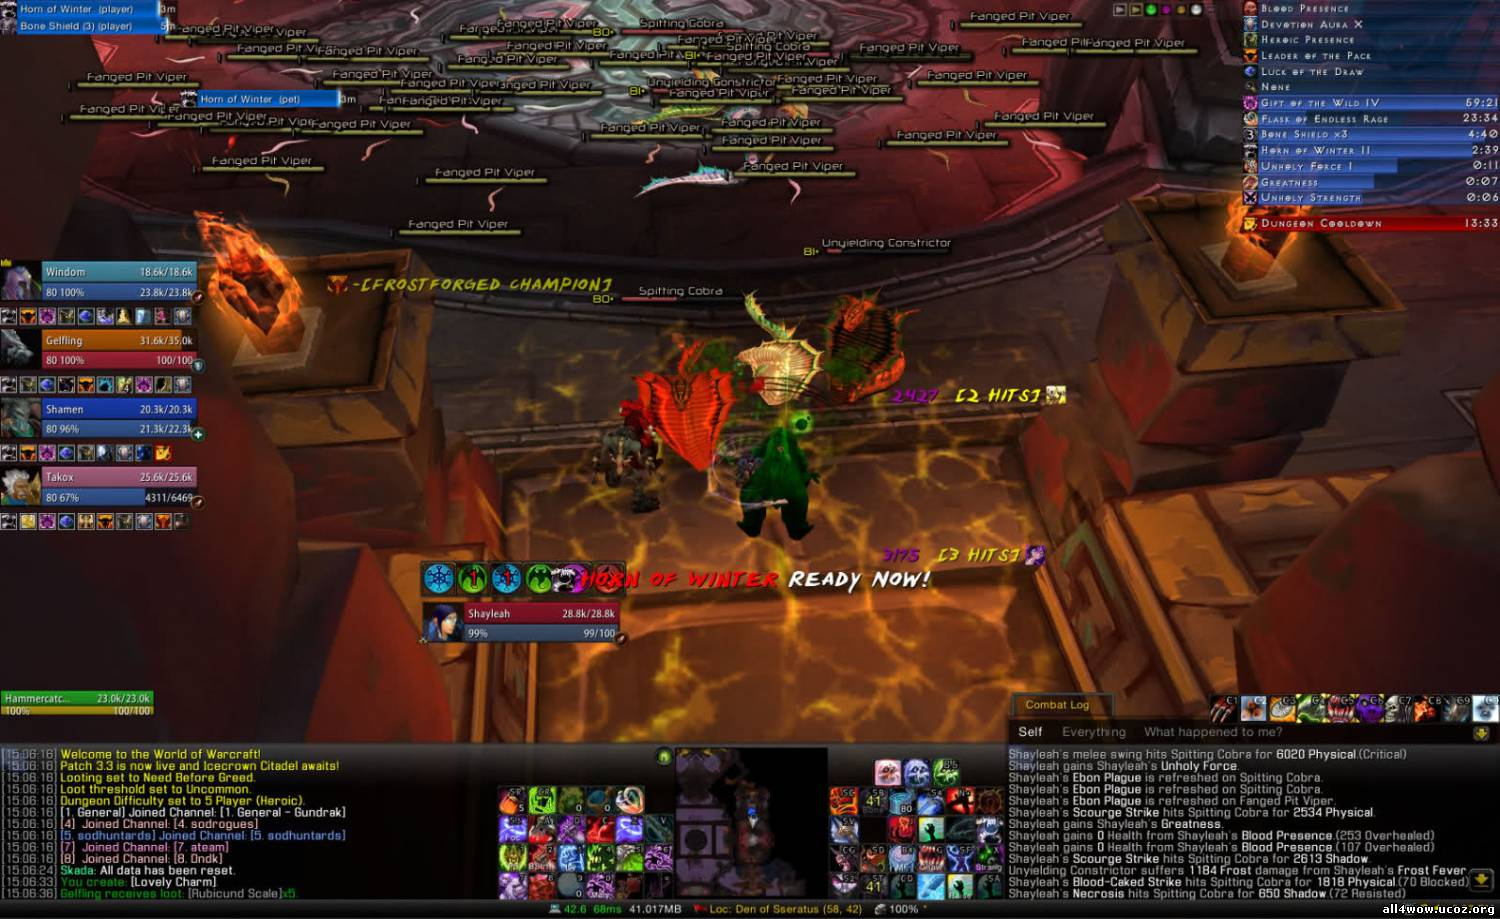 Damage meter for wow. breeze photo booth software free. imagine fashion des